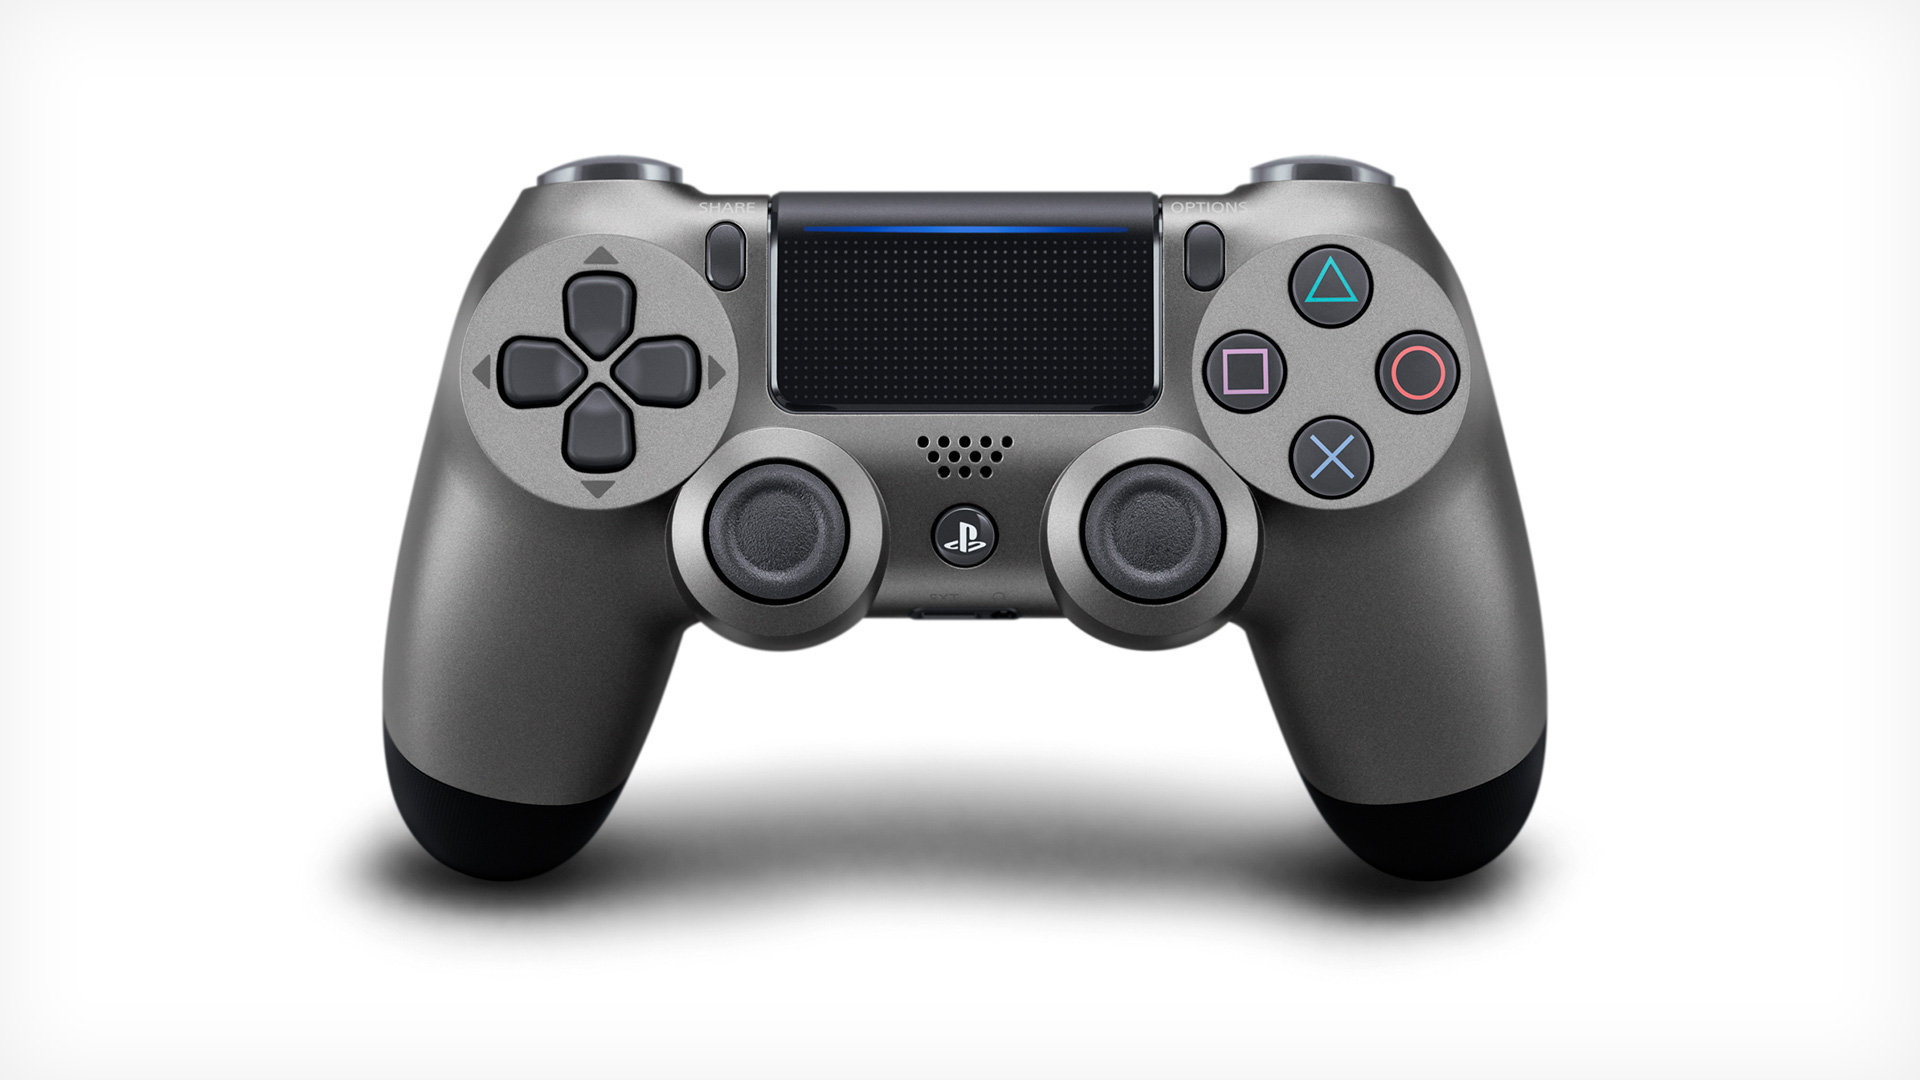 Dualshock 4 Wireless Controller for Playstation 4 - Black V2